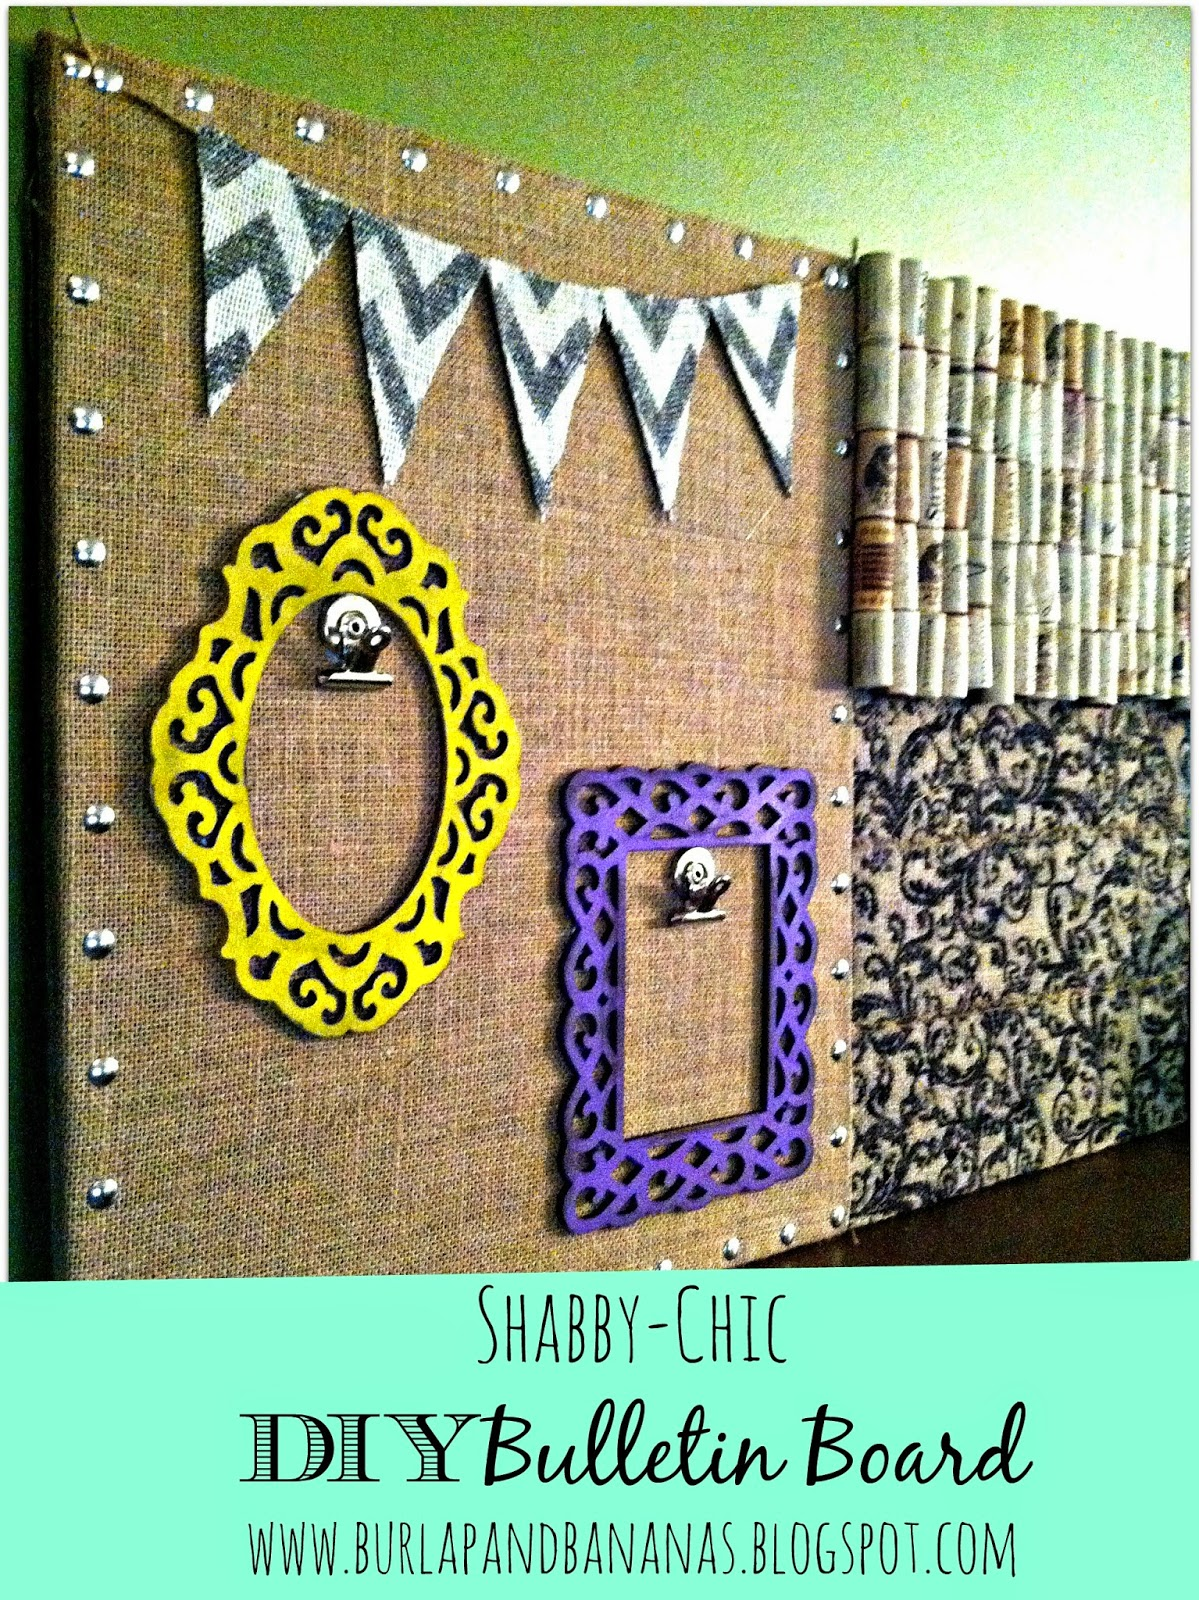 Burlap and Bananas: Shabby